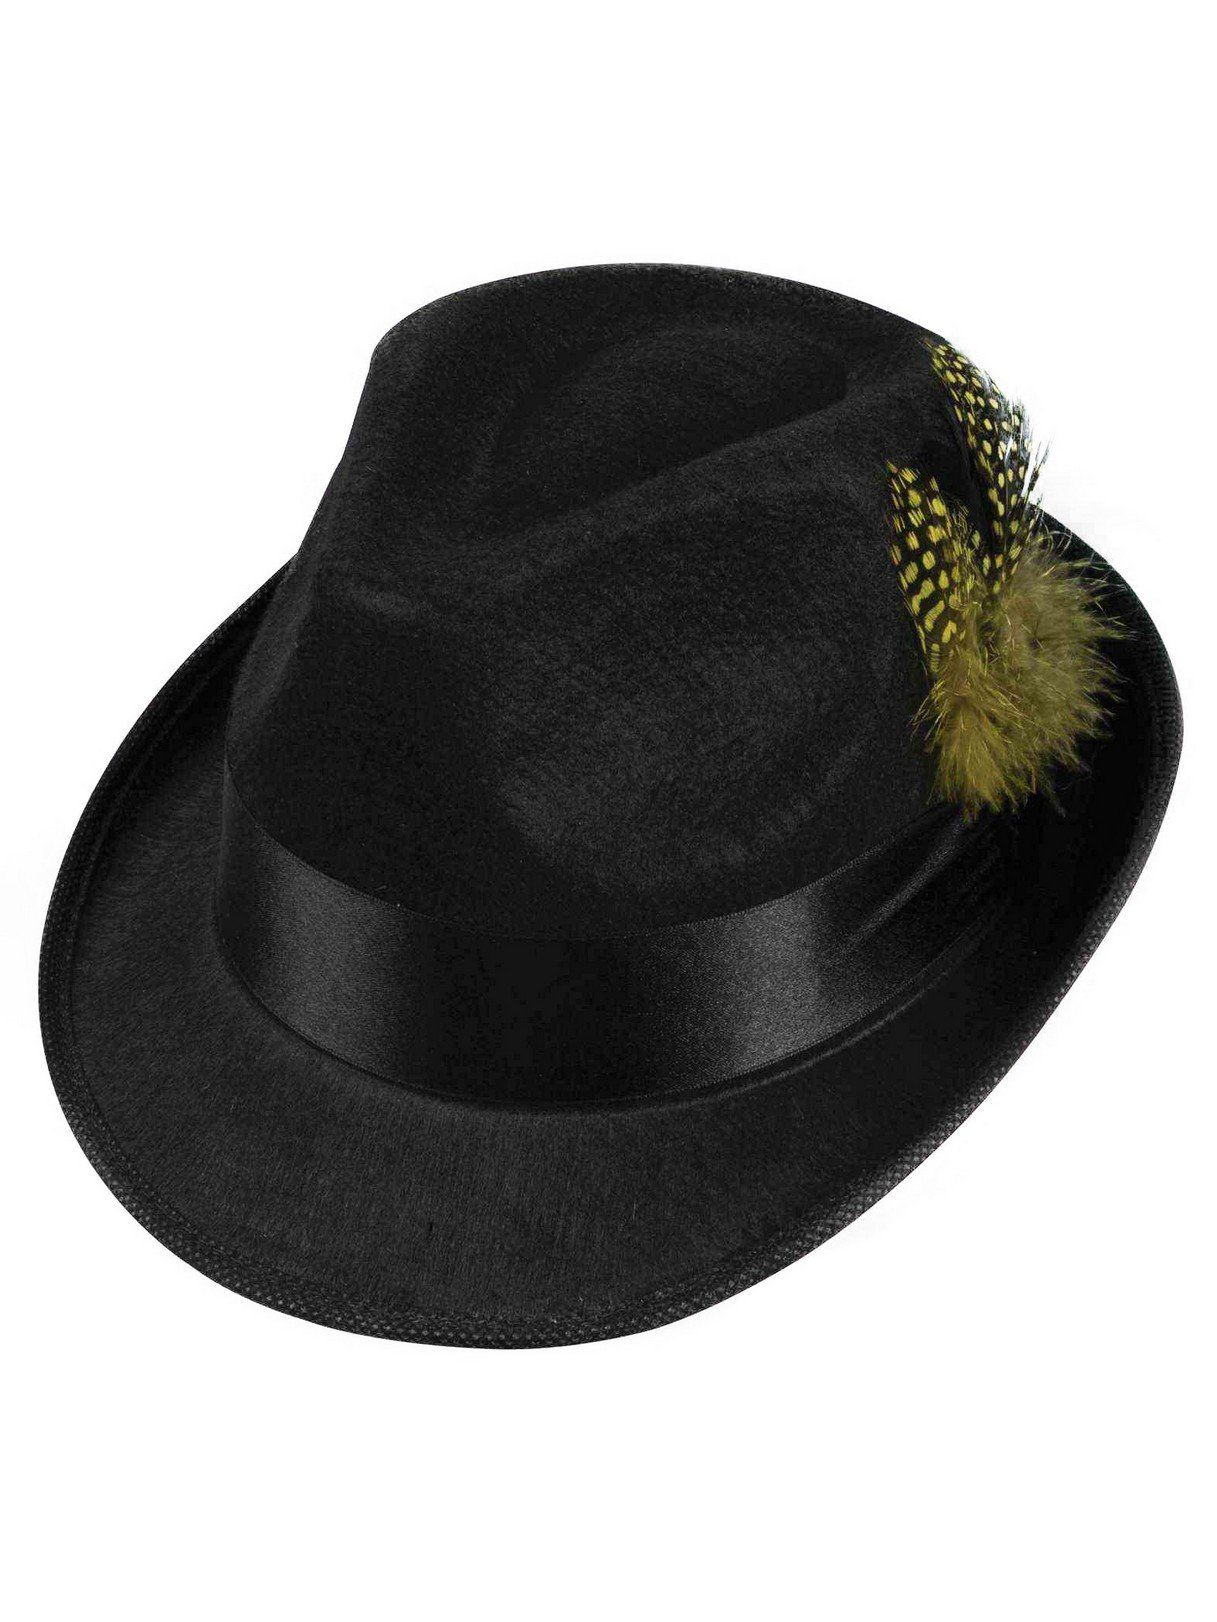 Felt Fedora Hat with Feather for Adults - Adult Costumes for 2018 ... 7796f6175269